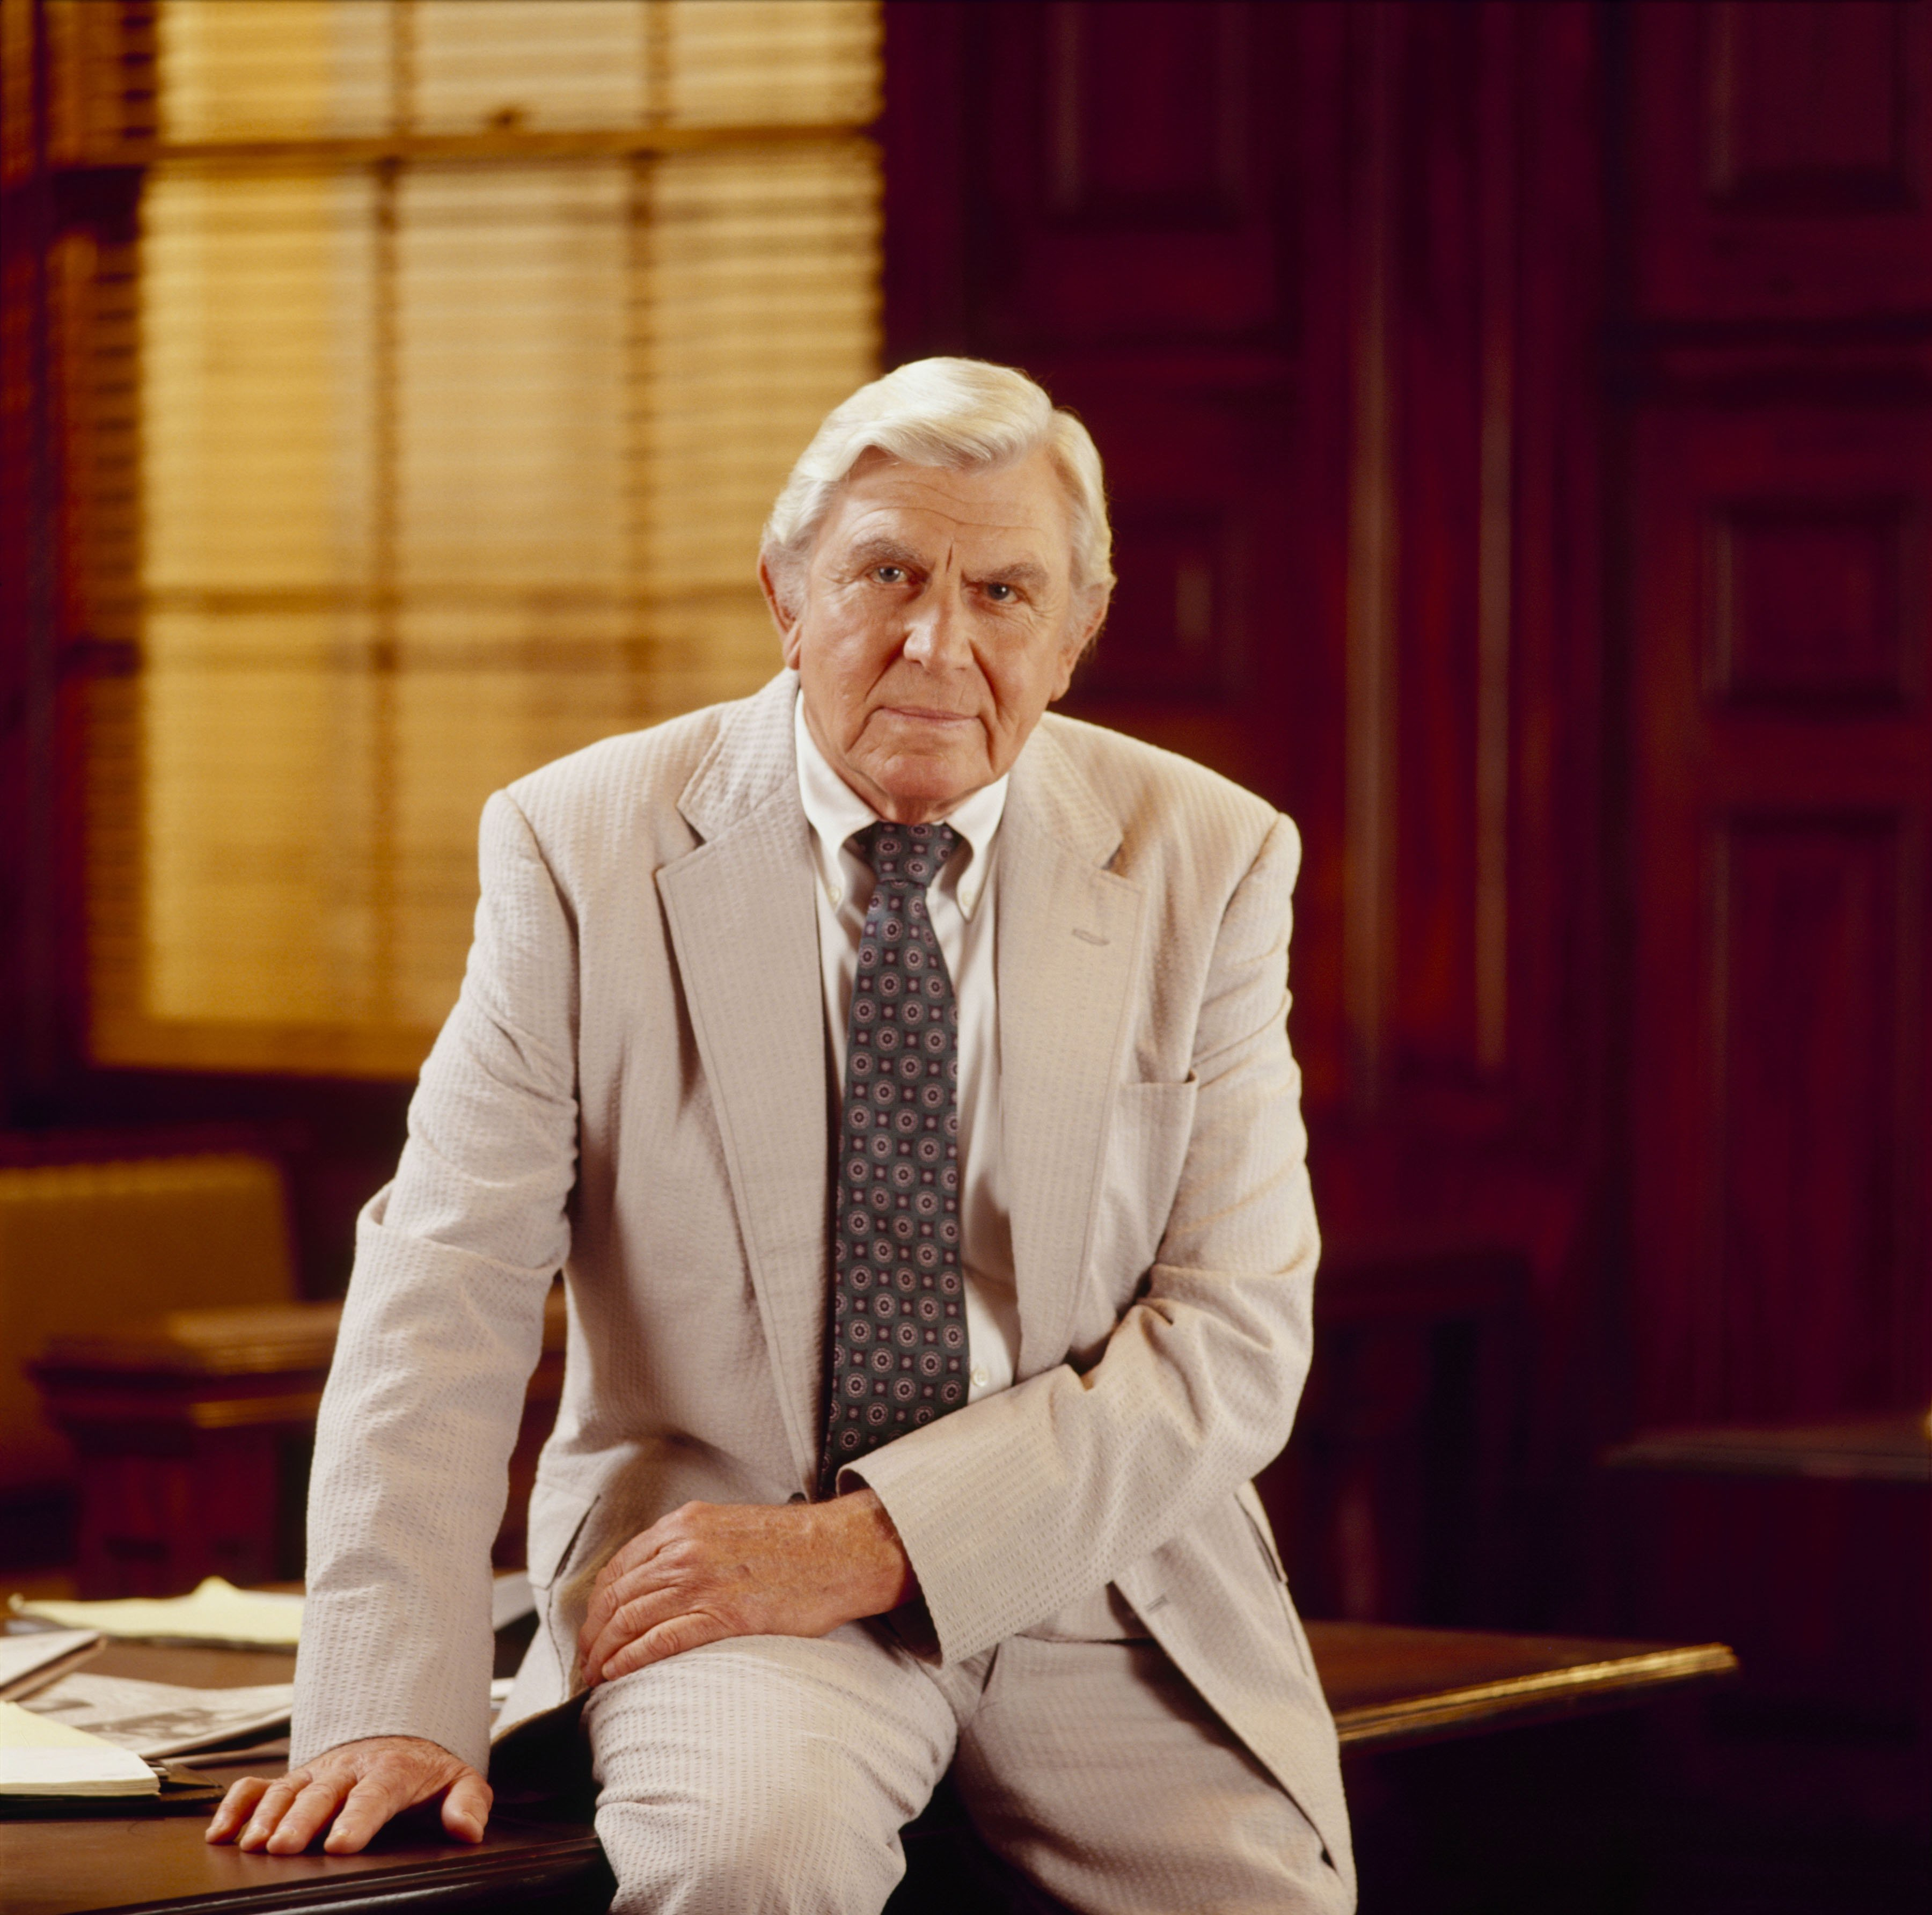 """A picture taken of Andy Griffith while he starred in """"Matlock"""" on November 24, 1992.   Source: Getty Images"""